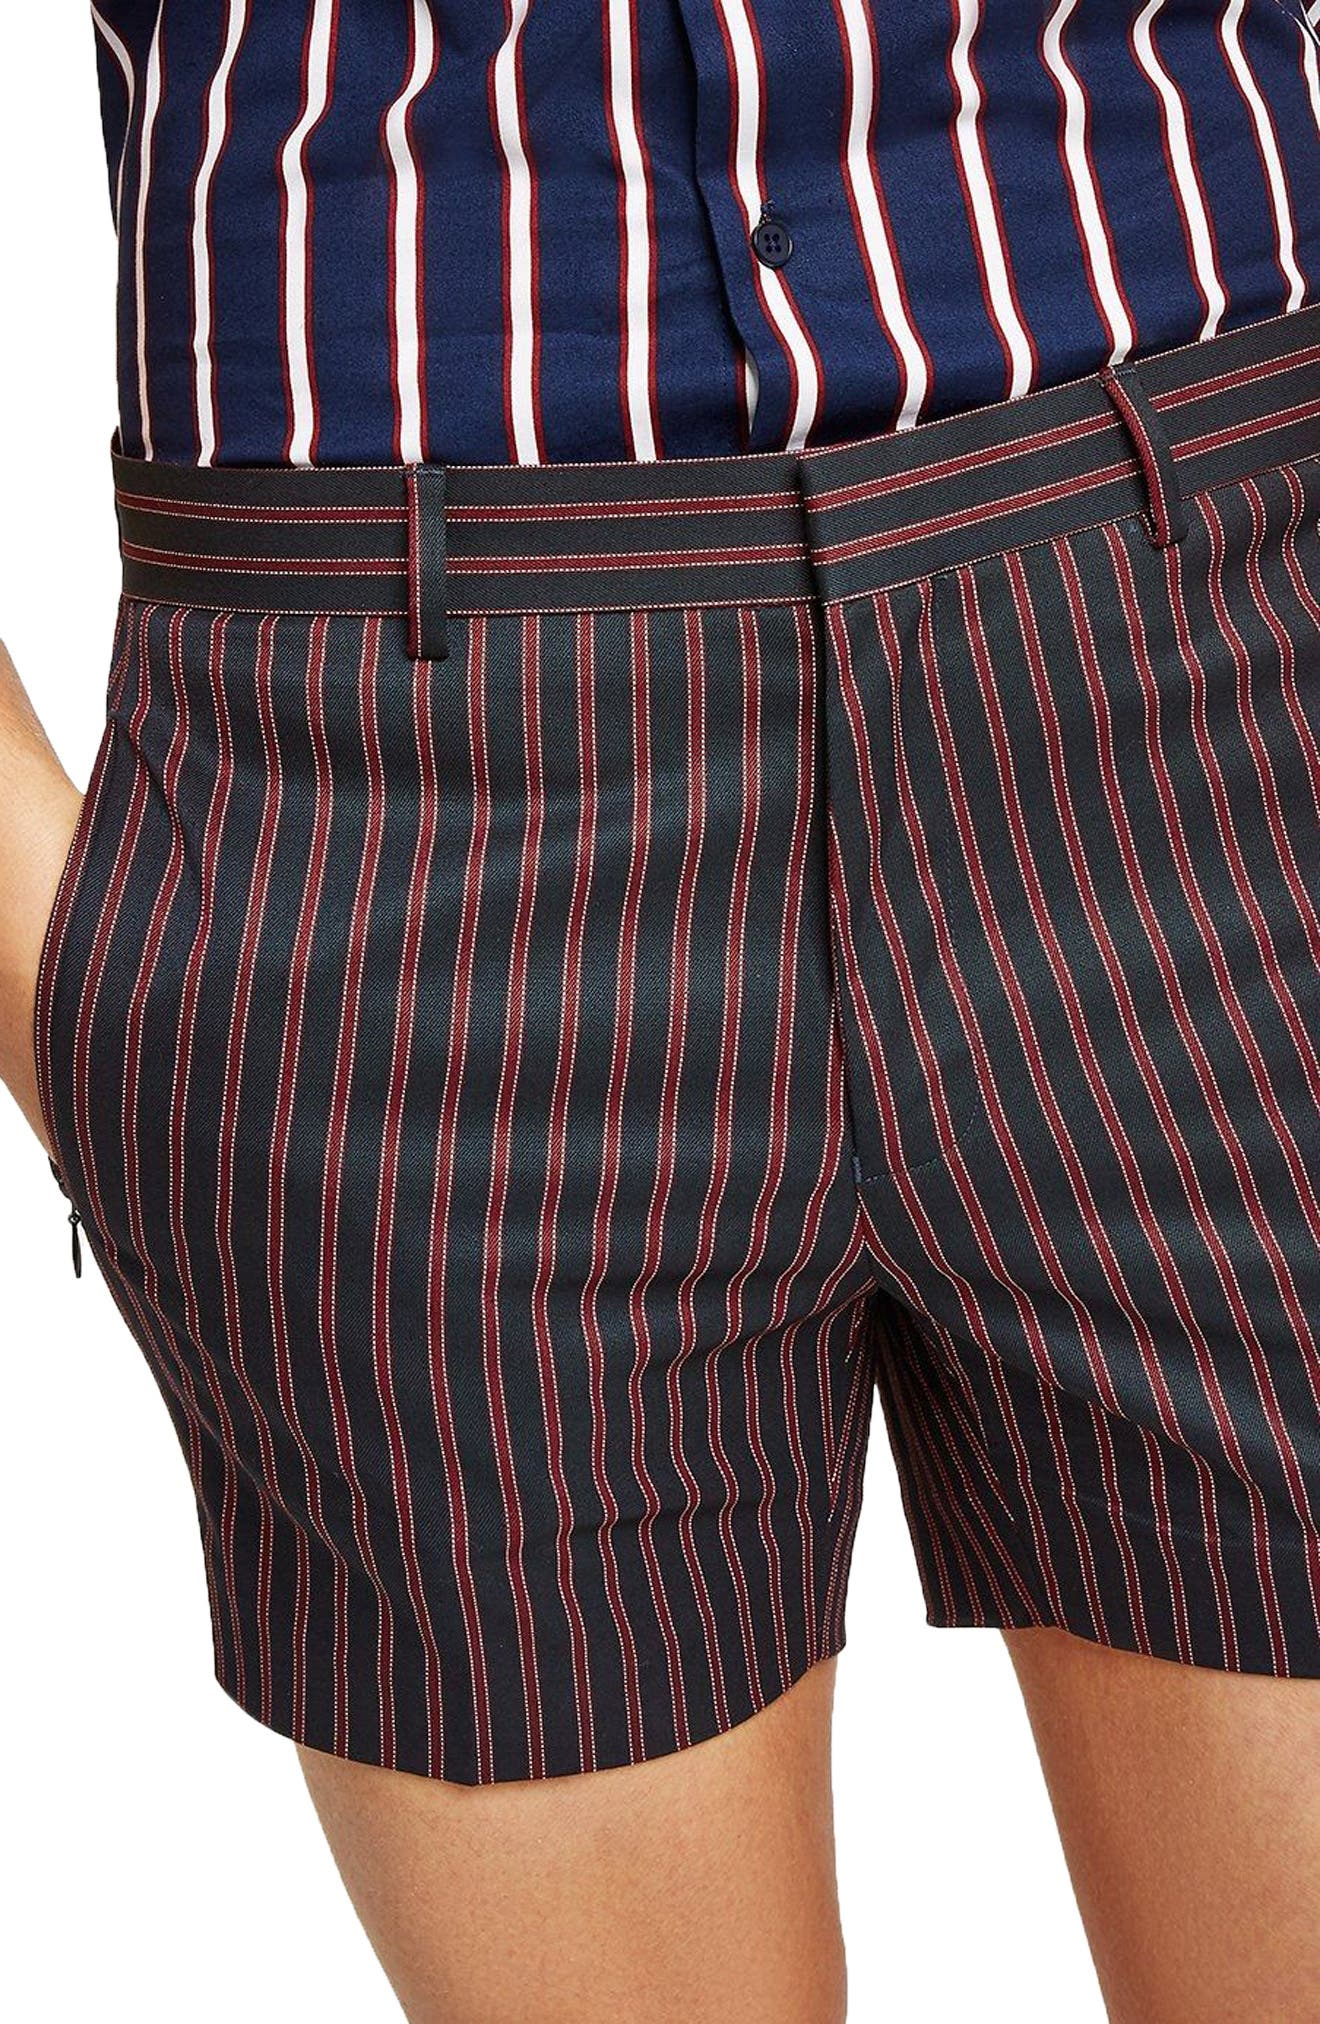 Stripe Shorts,                             Alternate thumbnail 3, color,                             Red